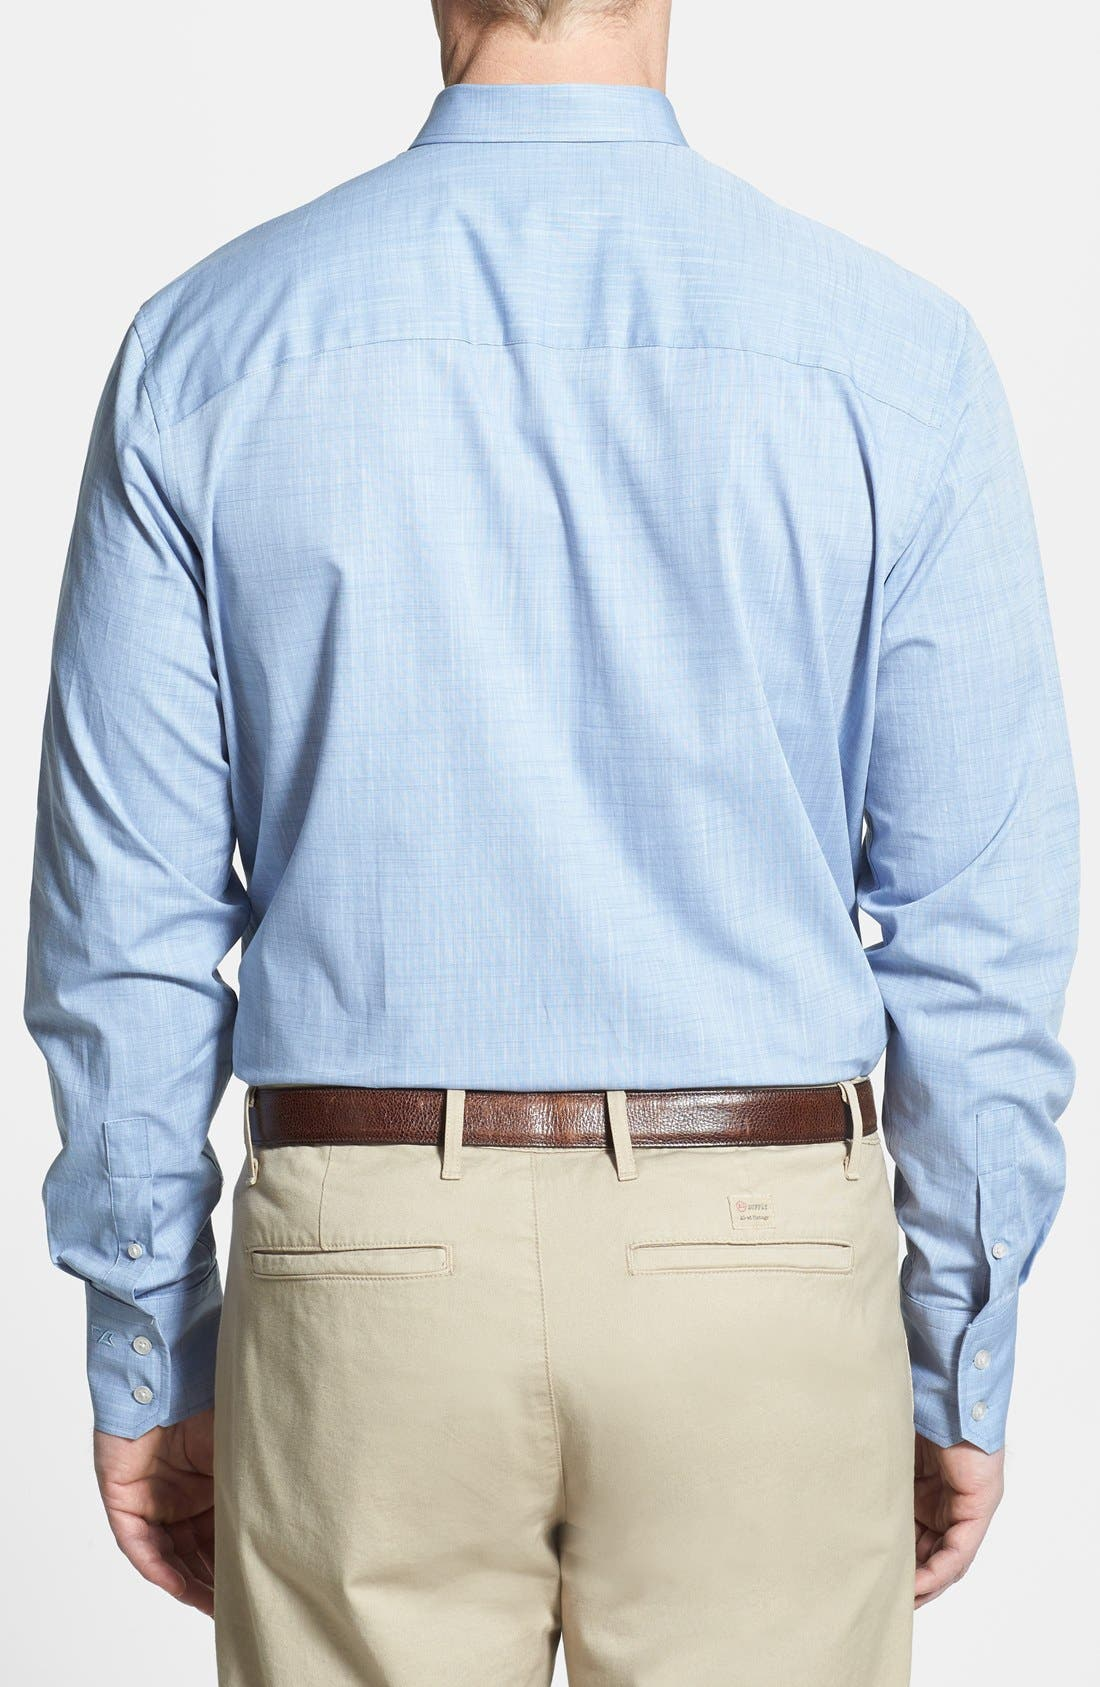 Alternate Image 2  - Cutter & Buck 'Meadows' Oxford Sport Shirt (Big & Tall)